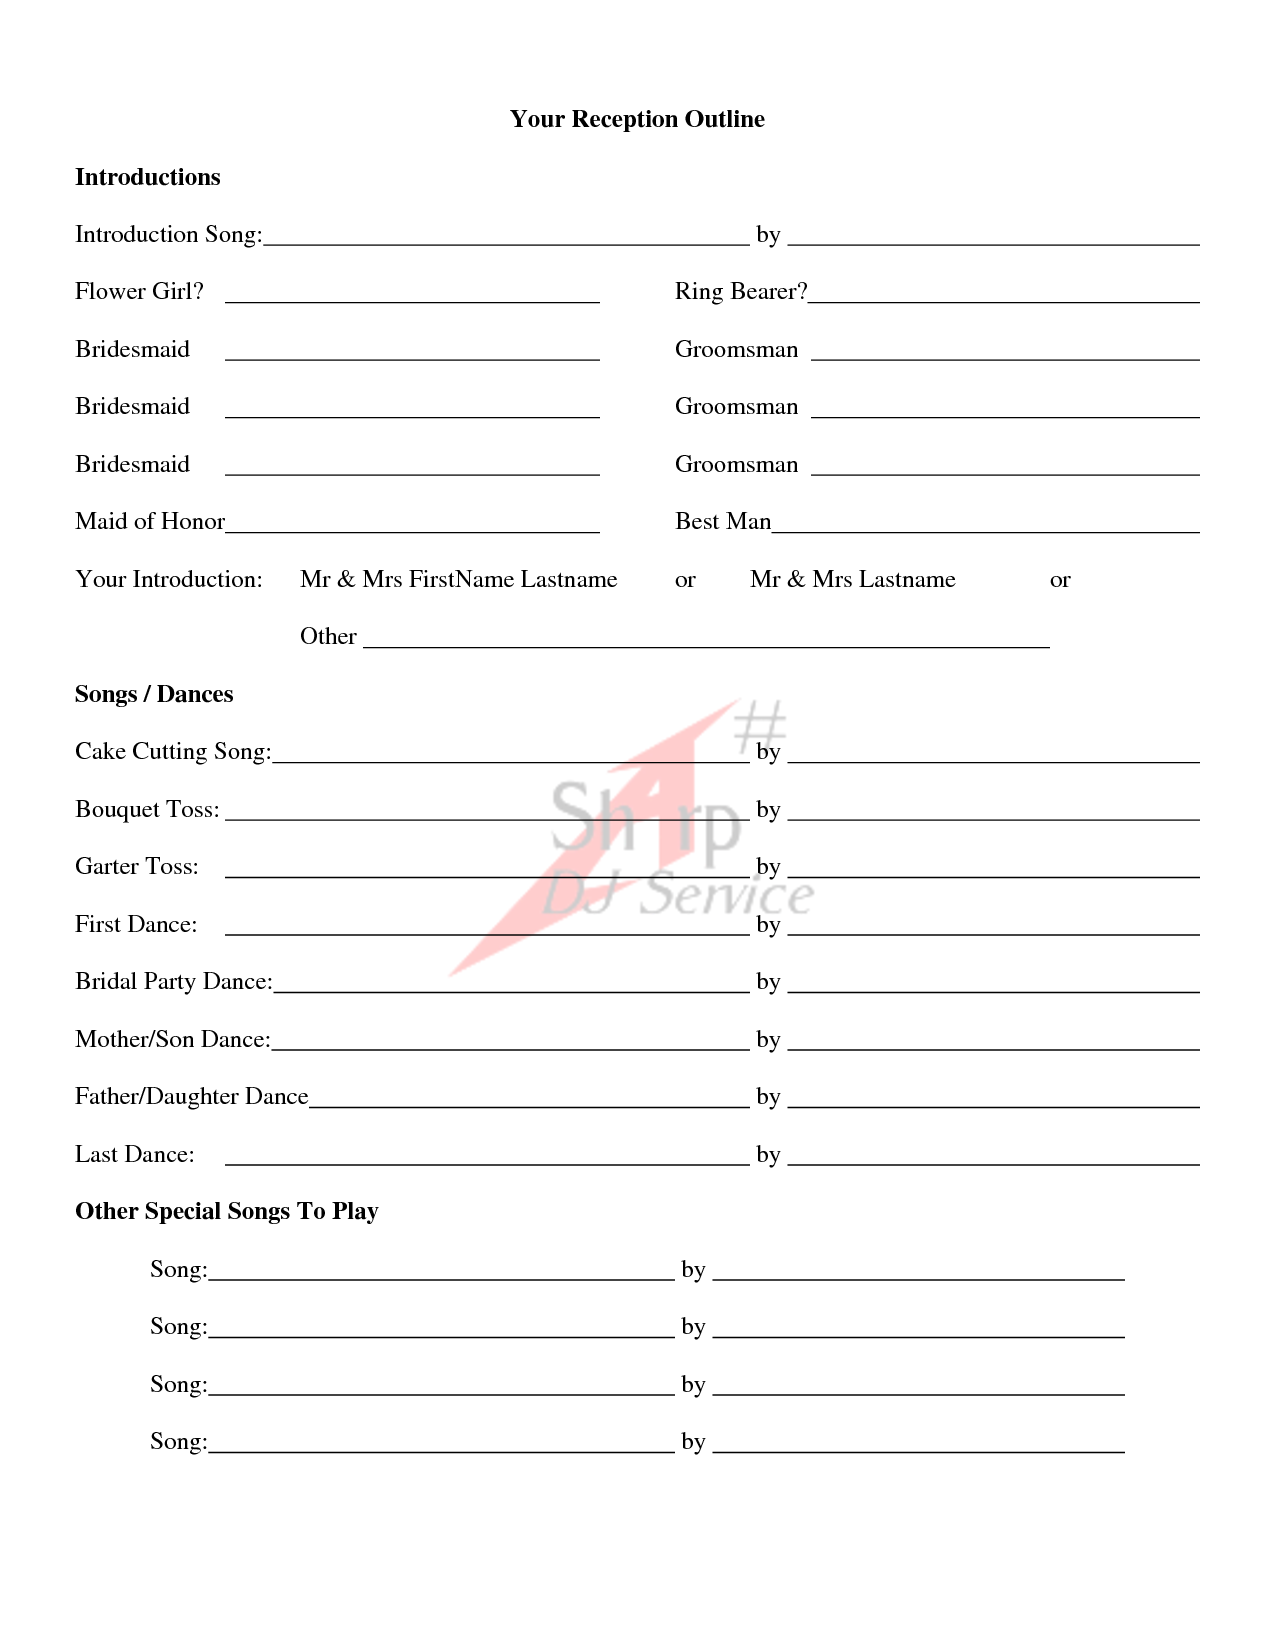 Wedding Ceremony Outline Examples